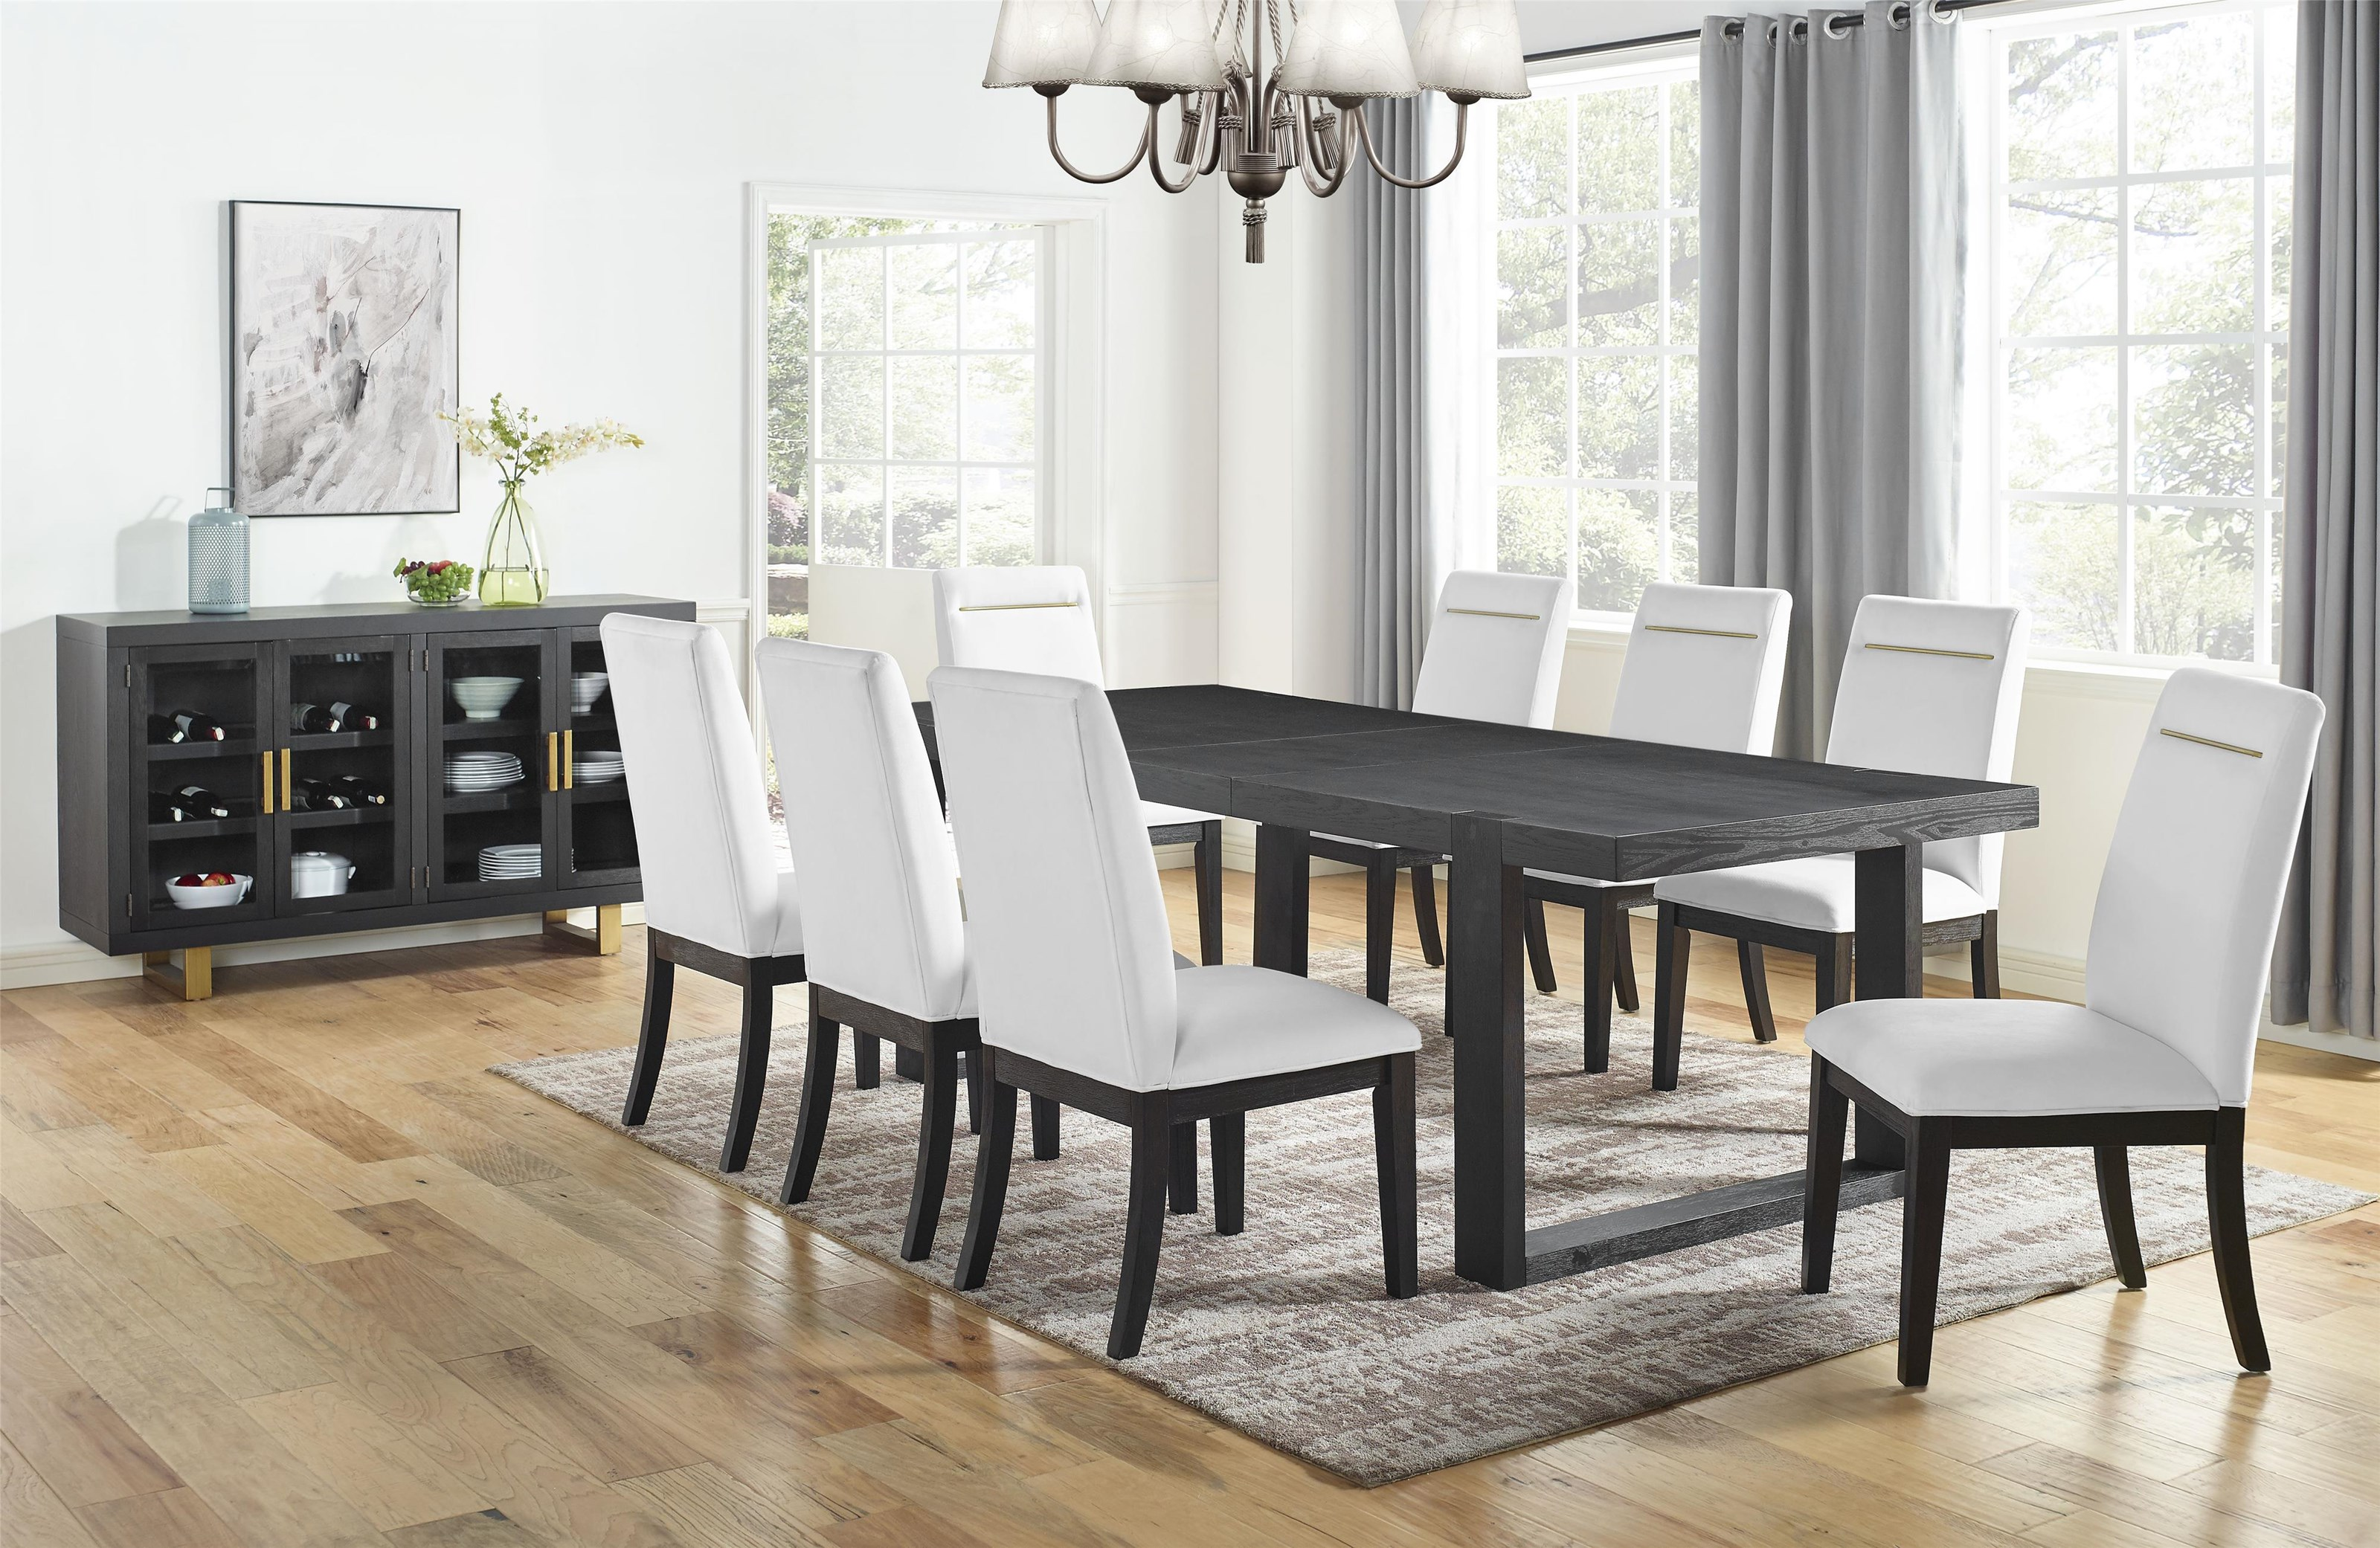 Yves 5 Piece Dining Set by Steve Silver at Darvin Furniture